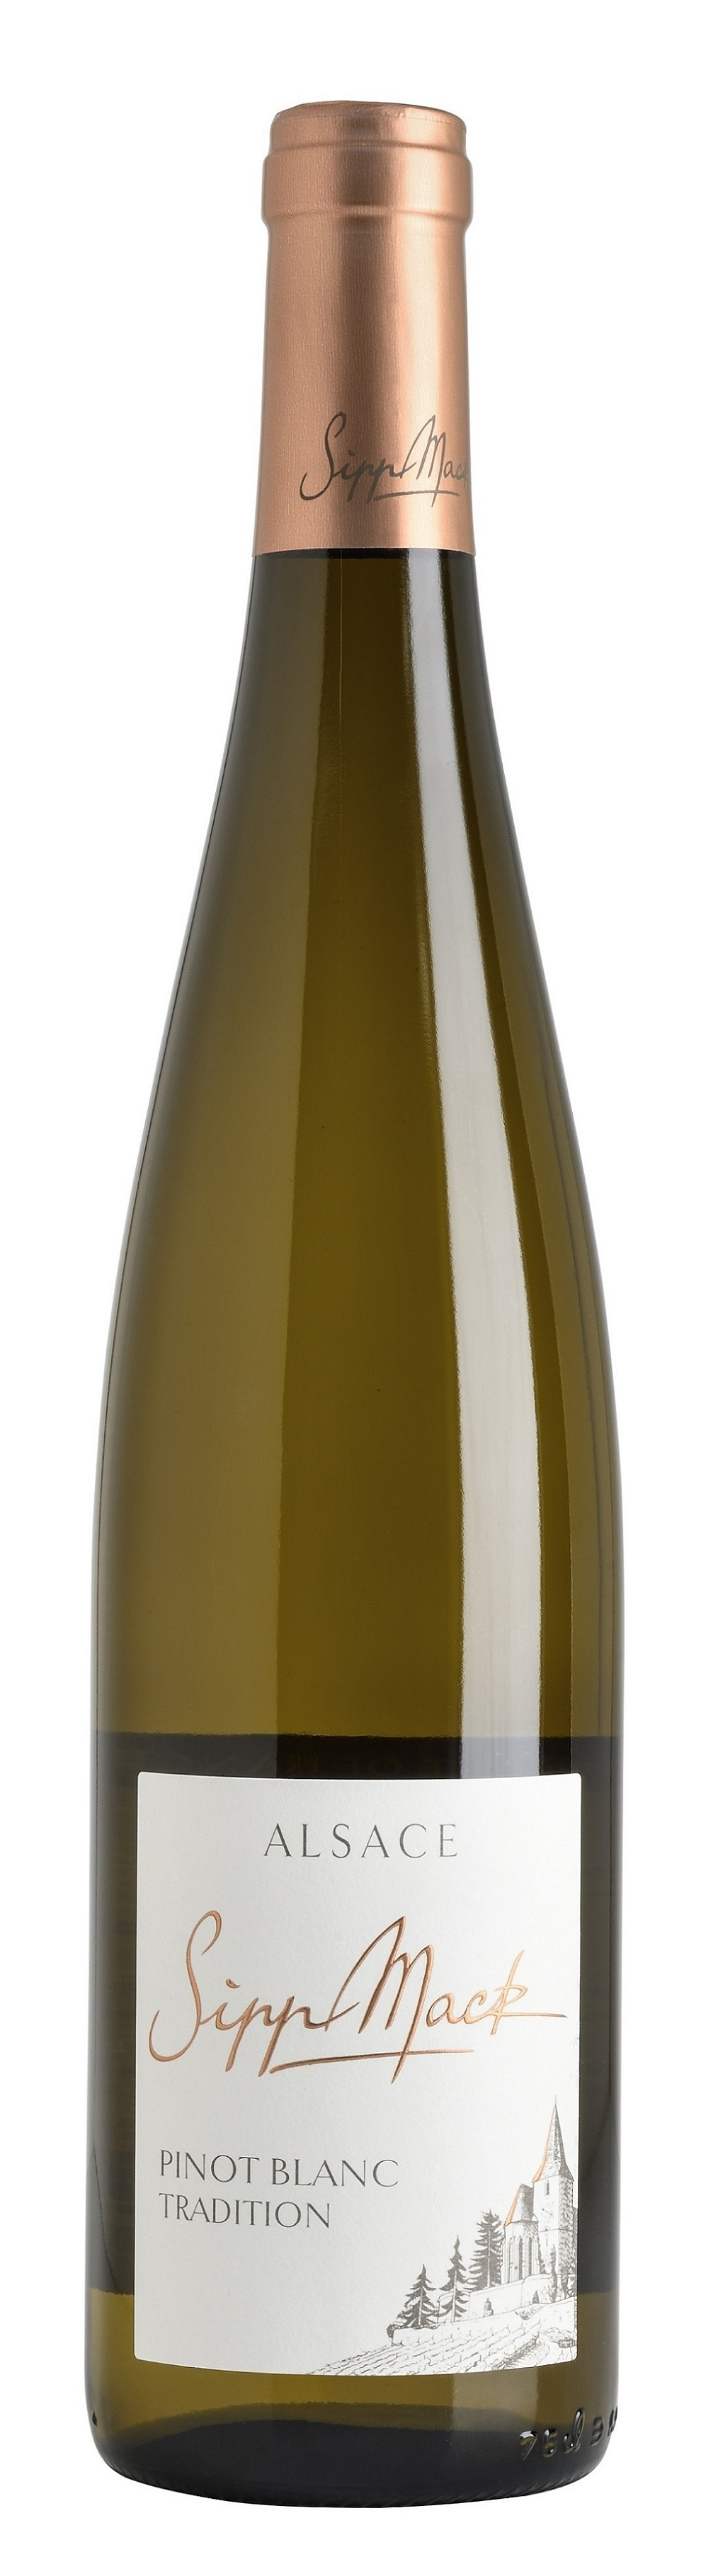 The chameleon. An easy-drinking wine that adapts to all types of dishes.